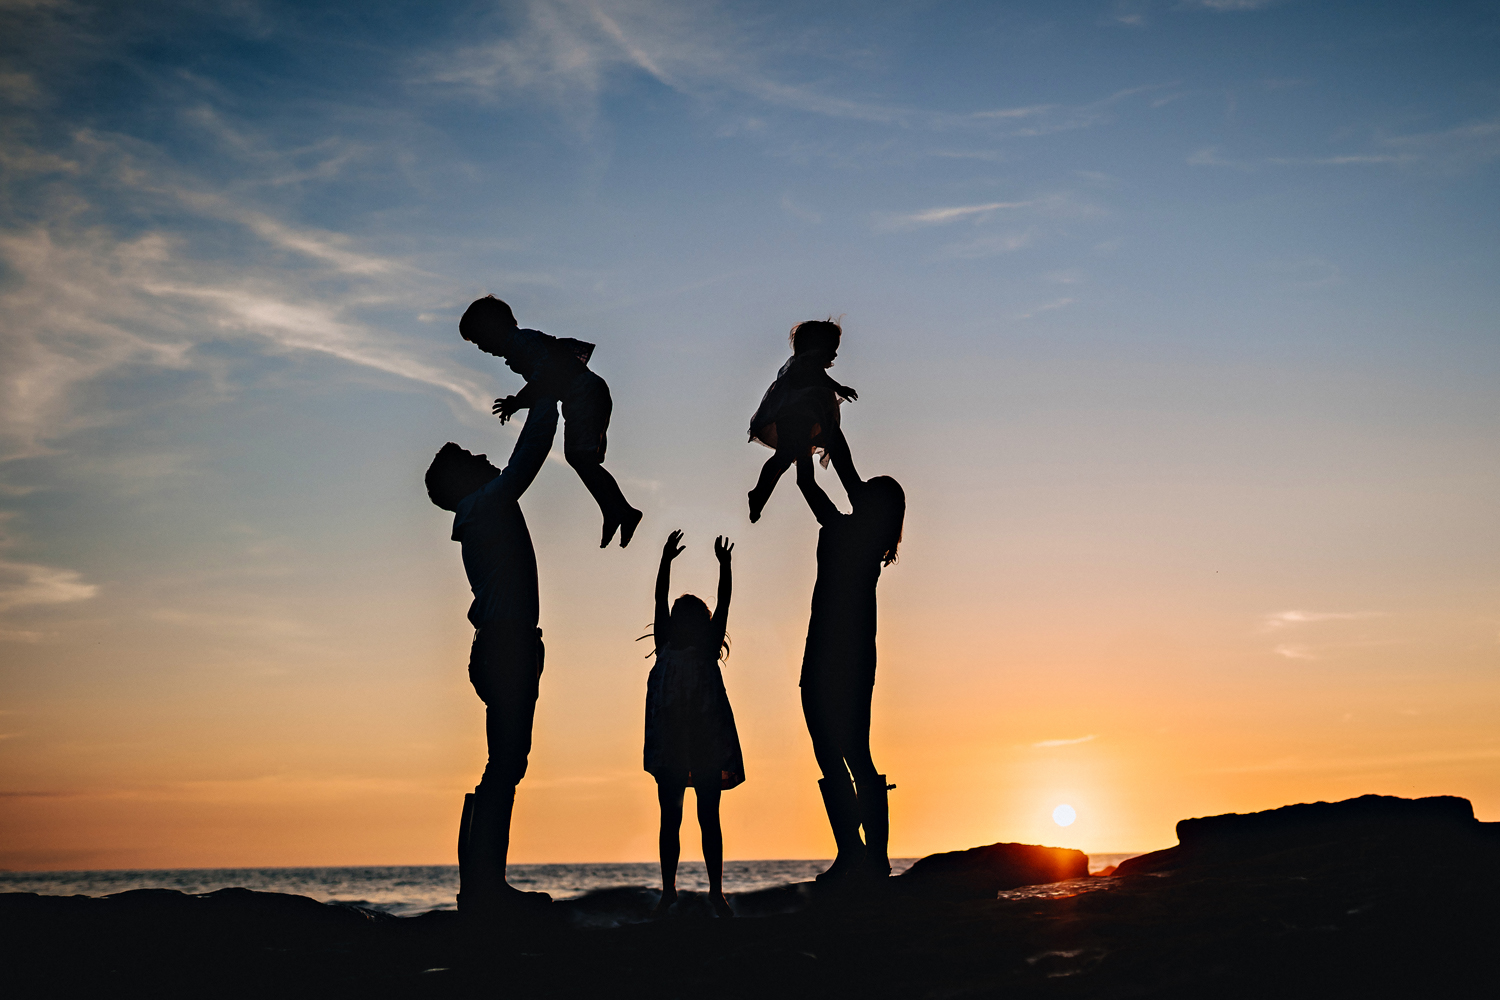 silhouette image of a family of 5 at sunset on the beach